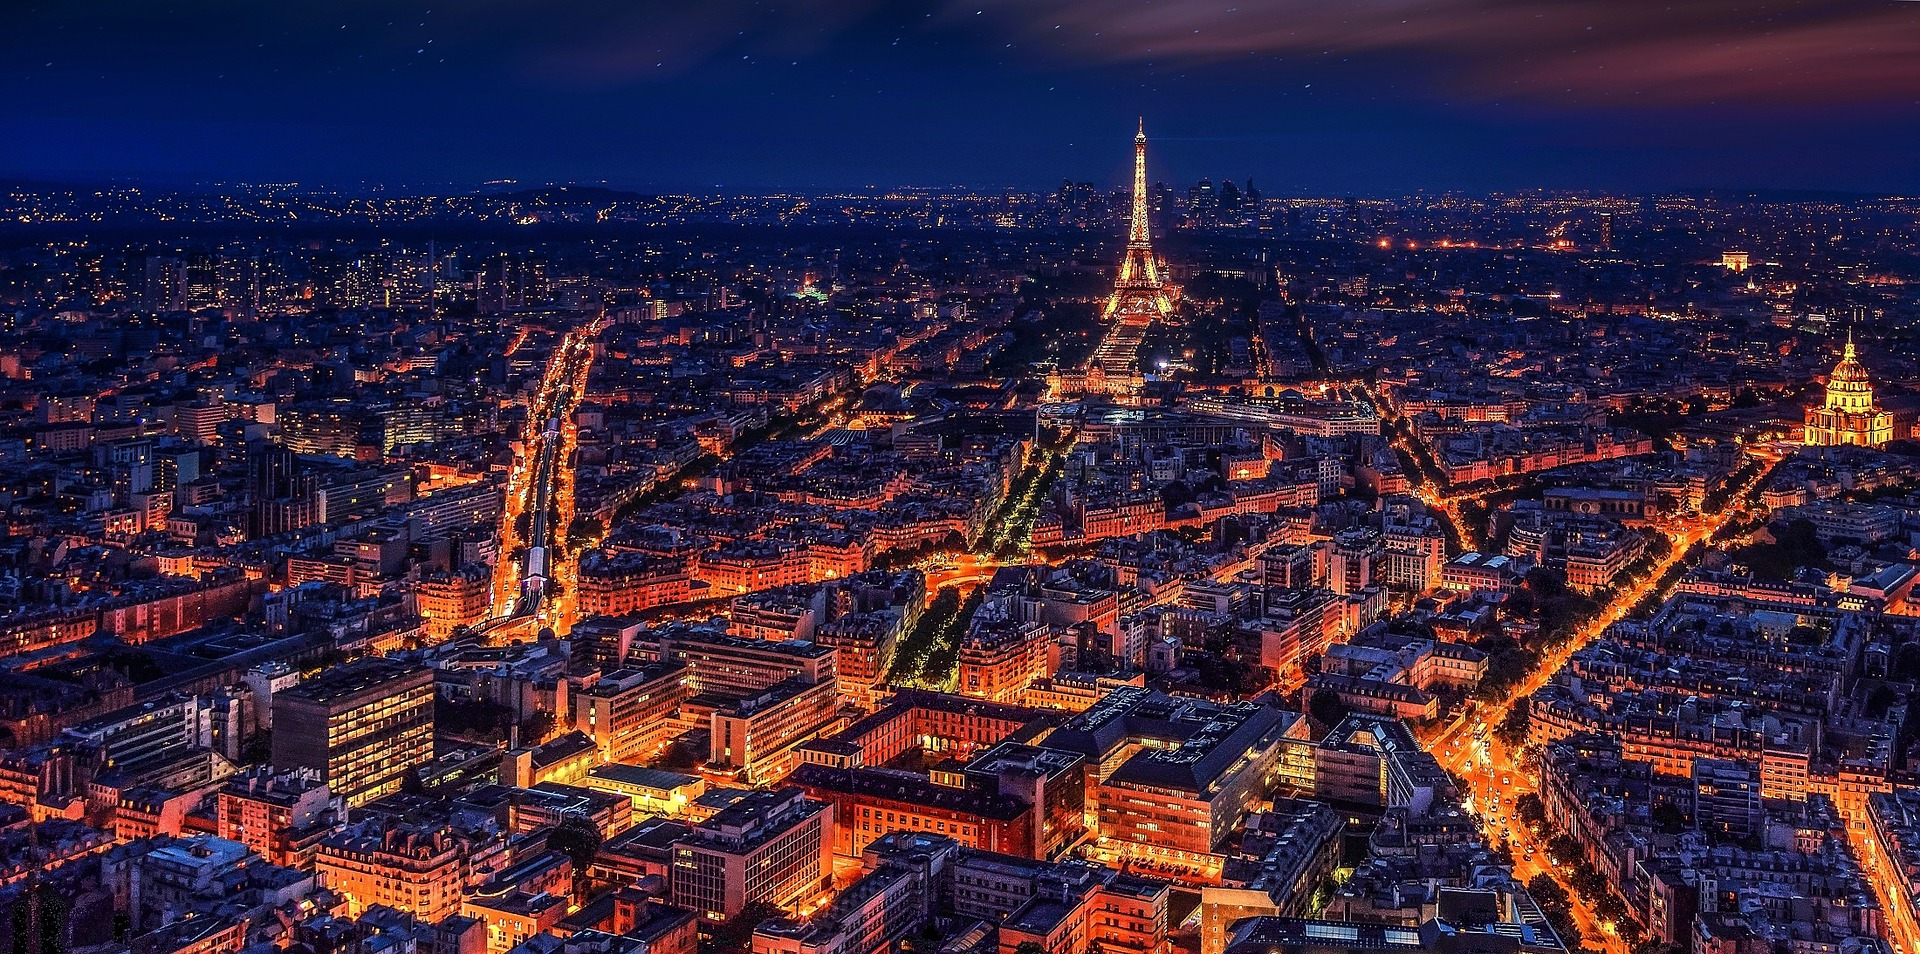 easiest languages to learn, paris, things to do in paris, things to see in paris, paris attractions, reasons to visit paris, visit paris, france, eiffel tower, paris attractions,